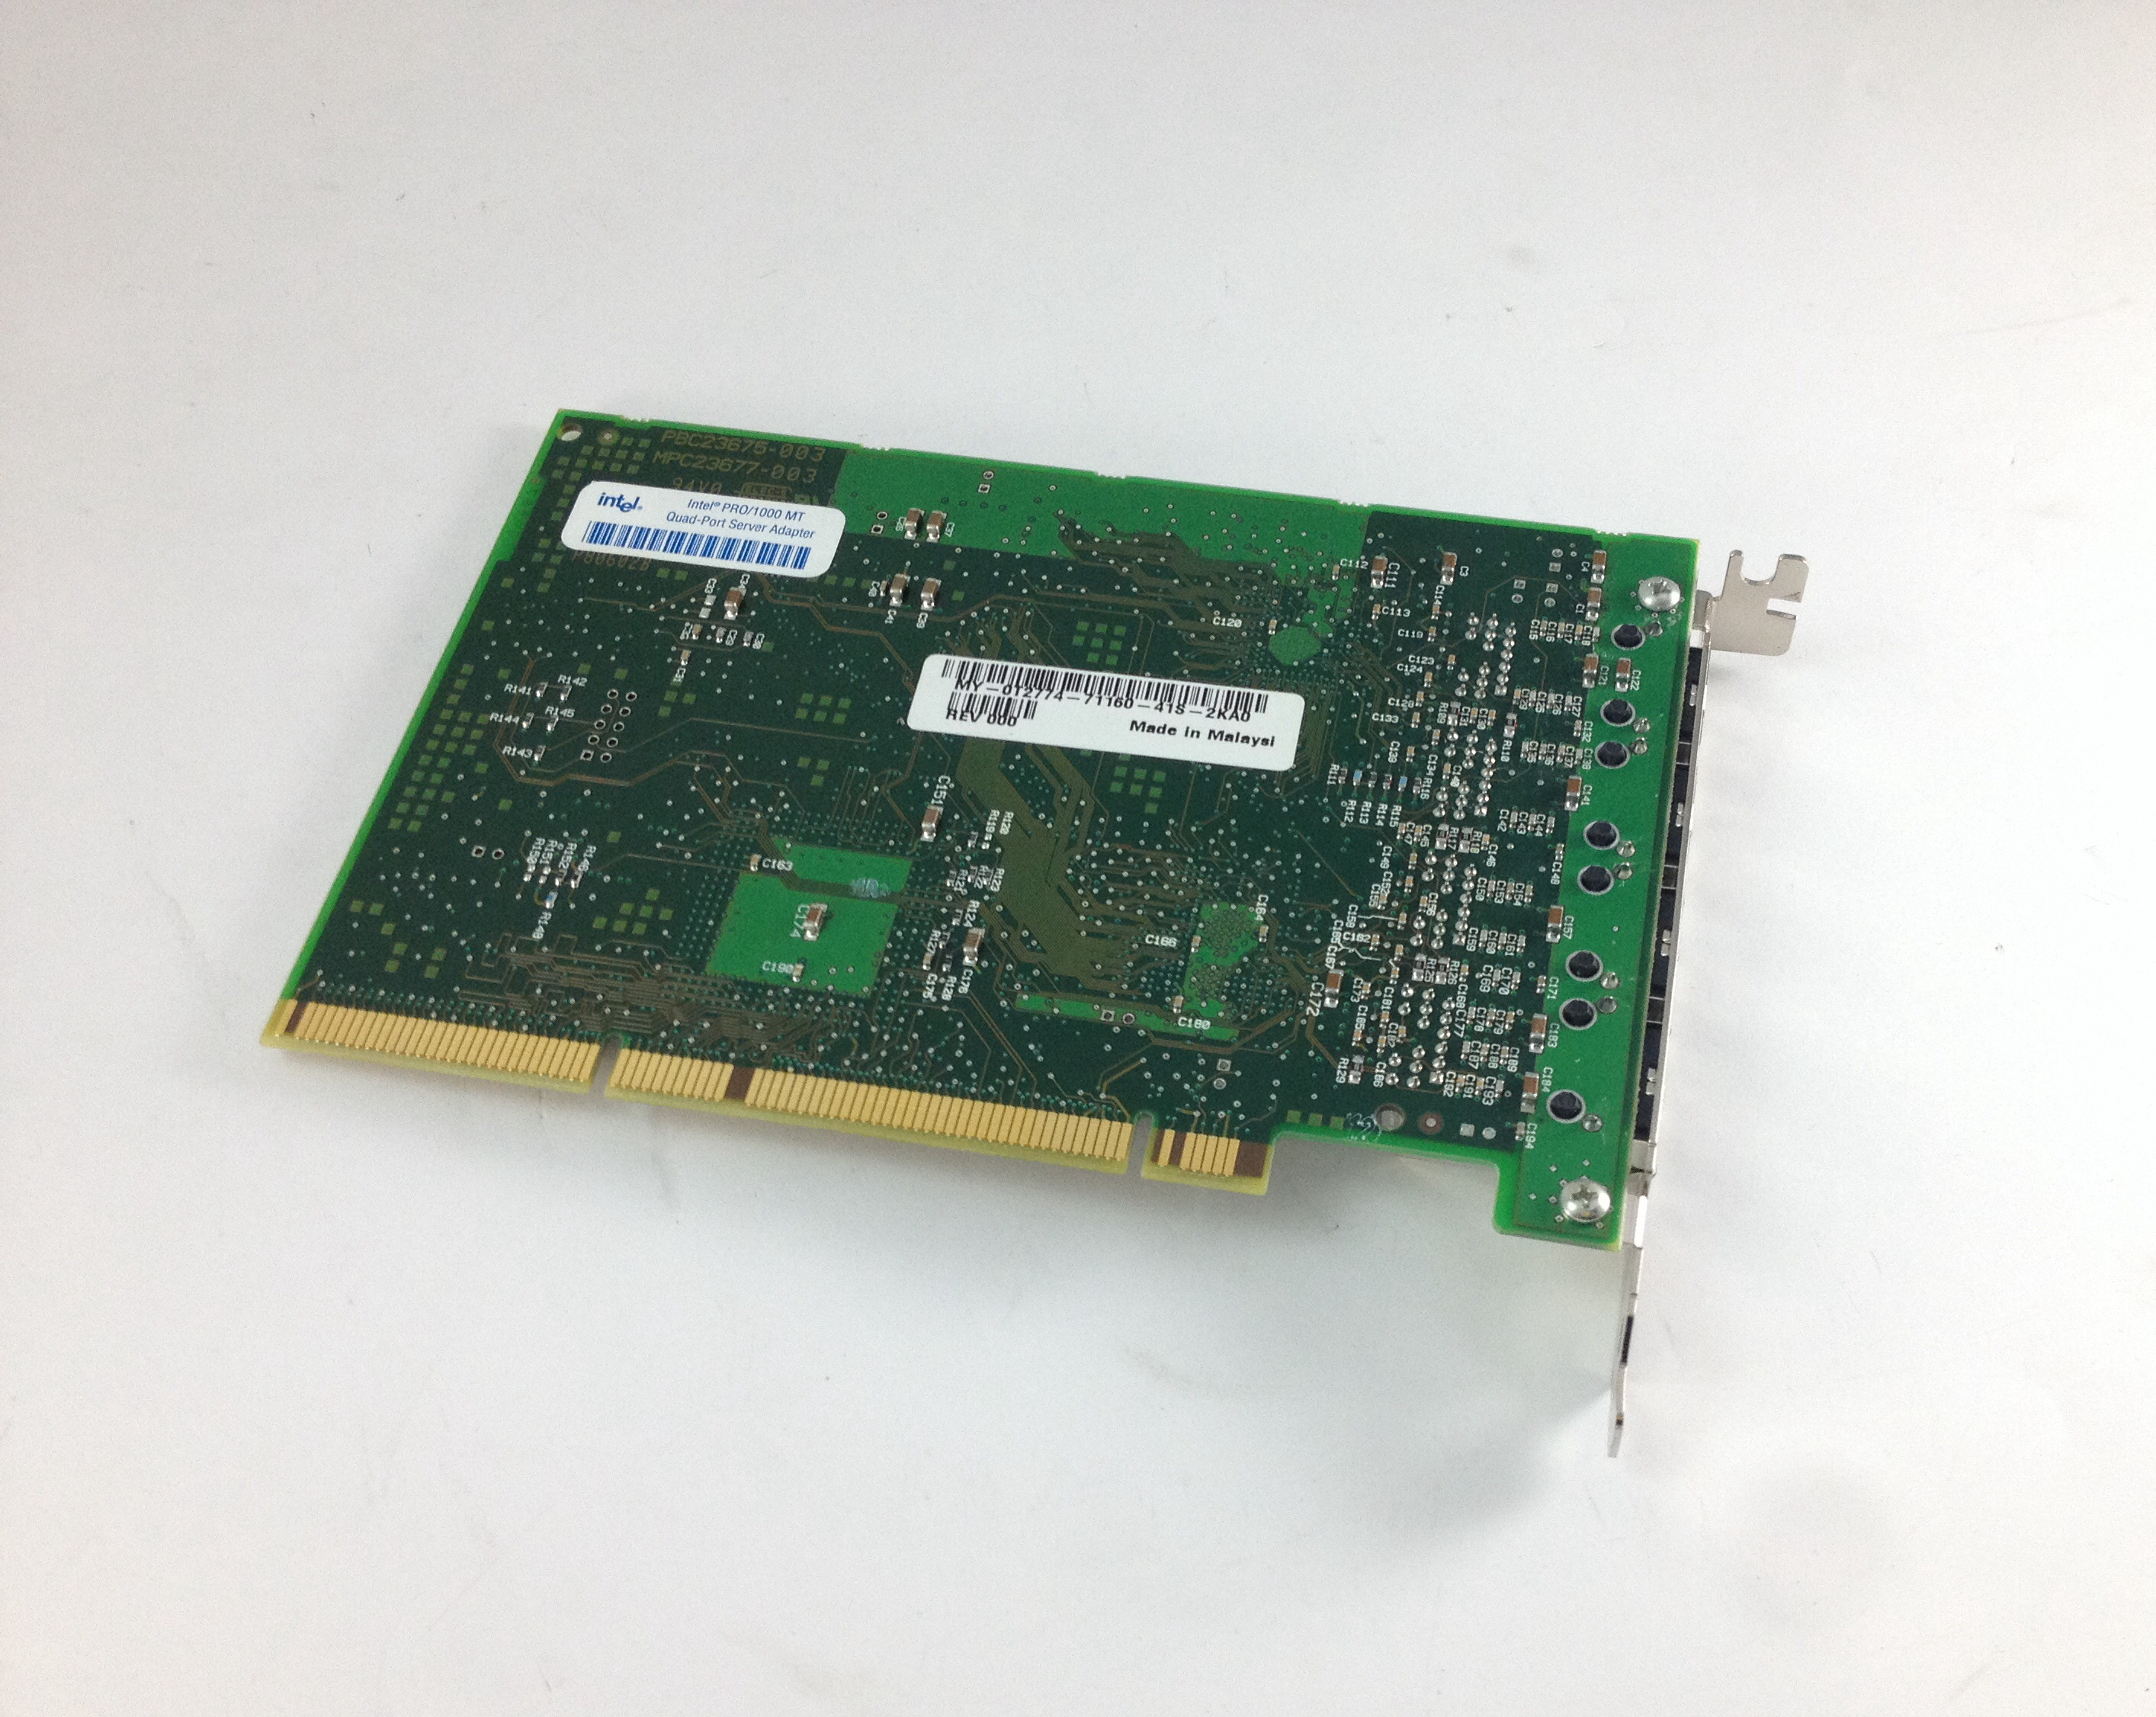 Dell Intel Pro/1000 Mt Nic Quad Port 1Gbps Pci-X Gigabit Ethernet Card (0T2774)